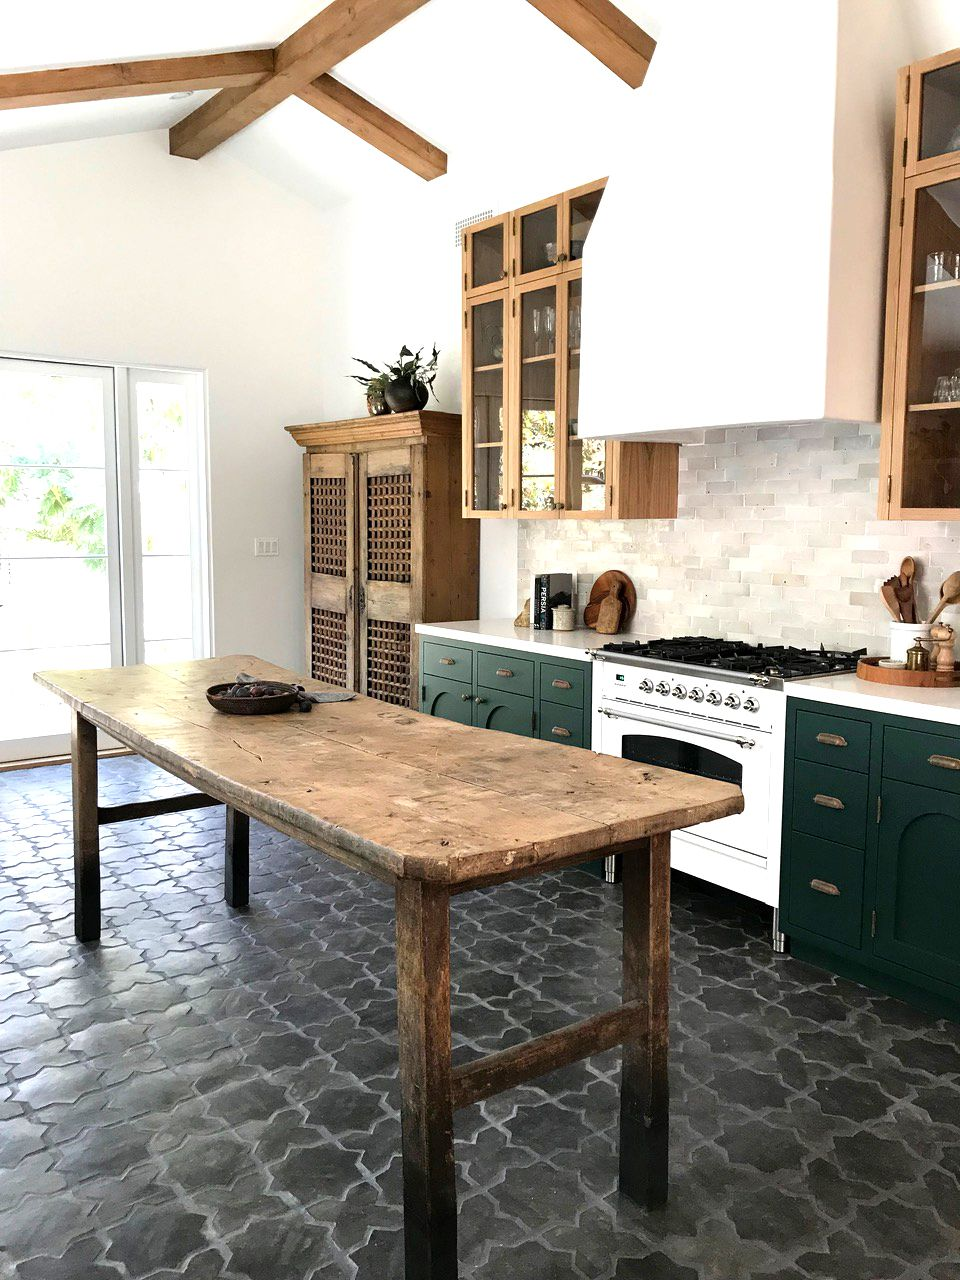 16 Kitchens That Will Make You Want To Retile Yours